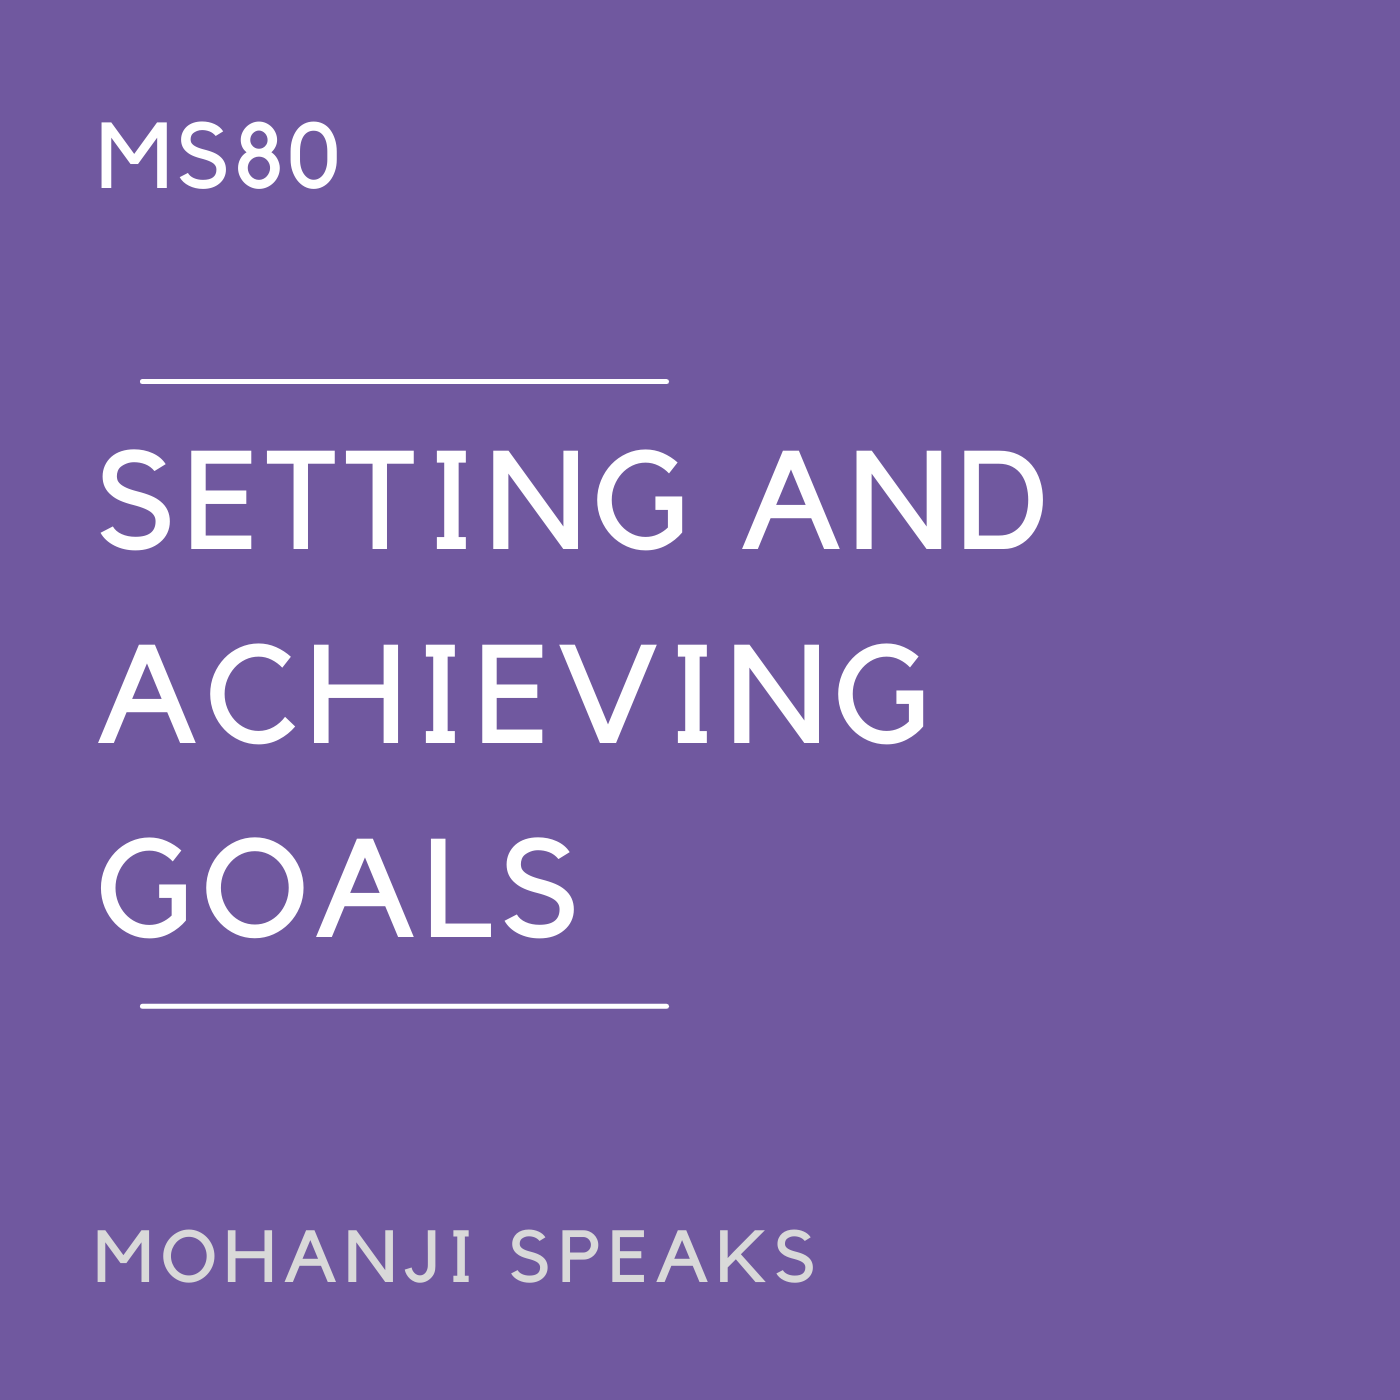 MS80 - Setting and Achieving Goals